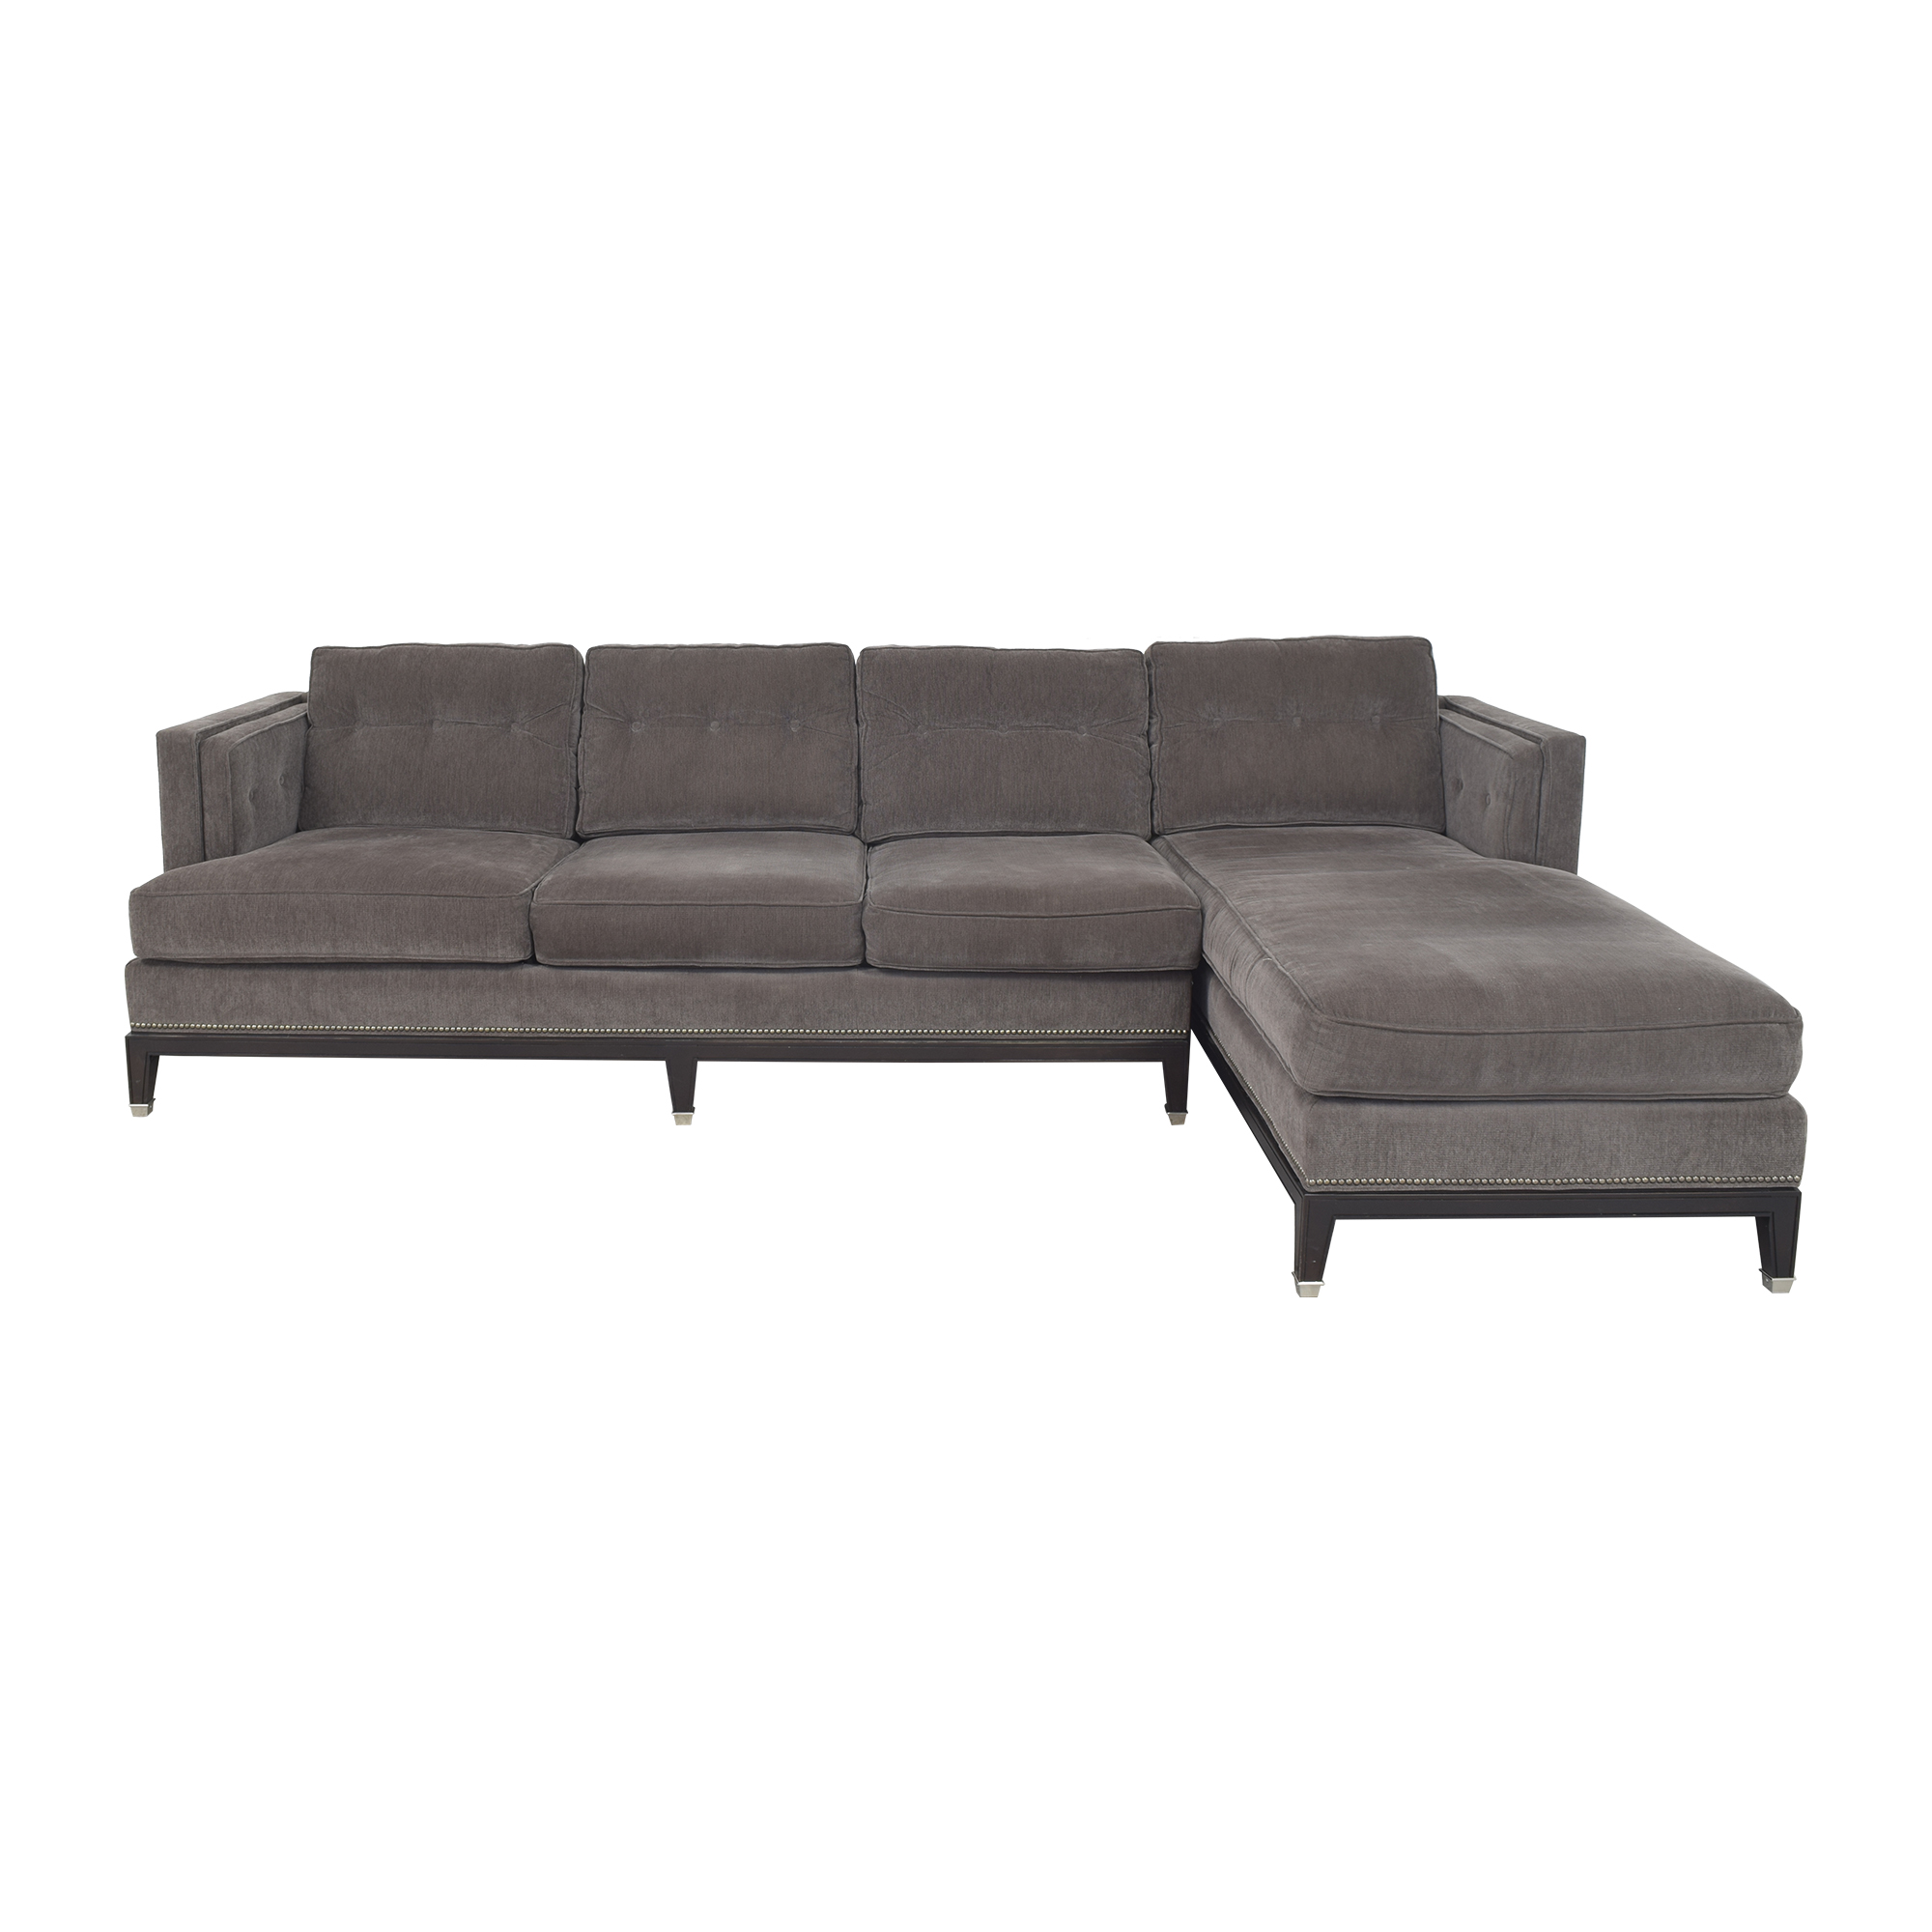 Vanguard Furniture Vanguard Furniture Michael Weiss Whitaker Sectional Sofa nyc